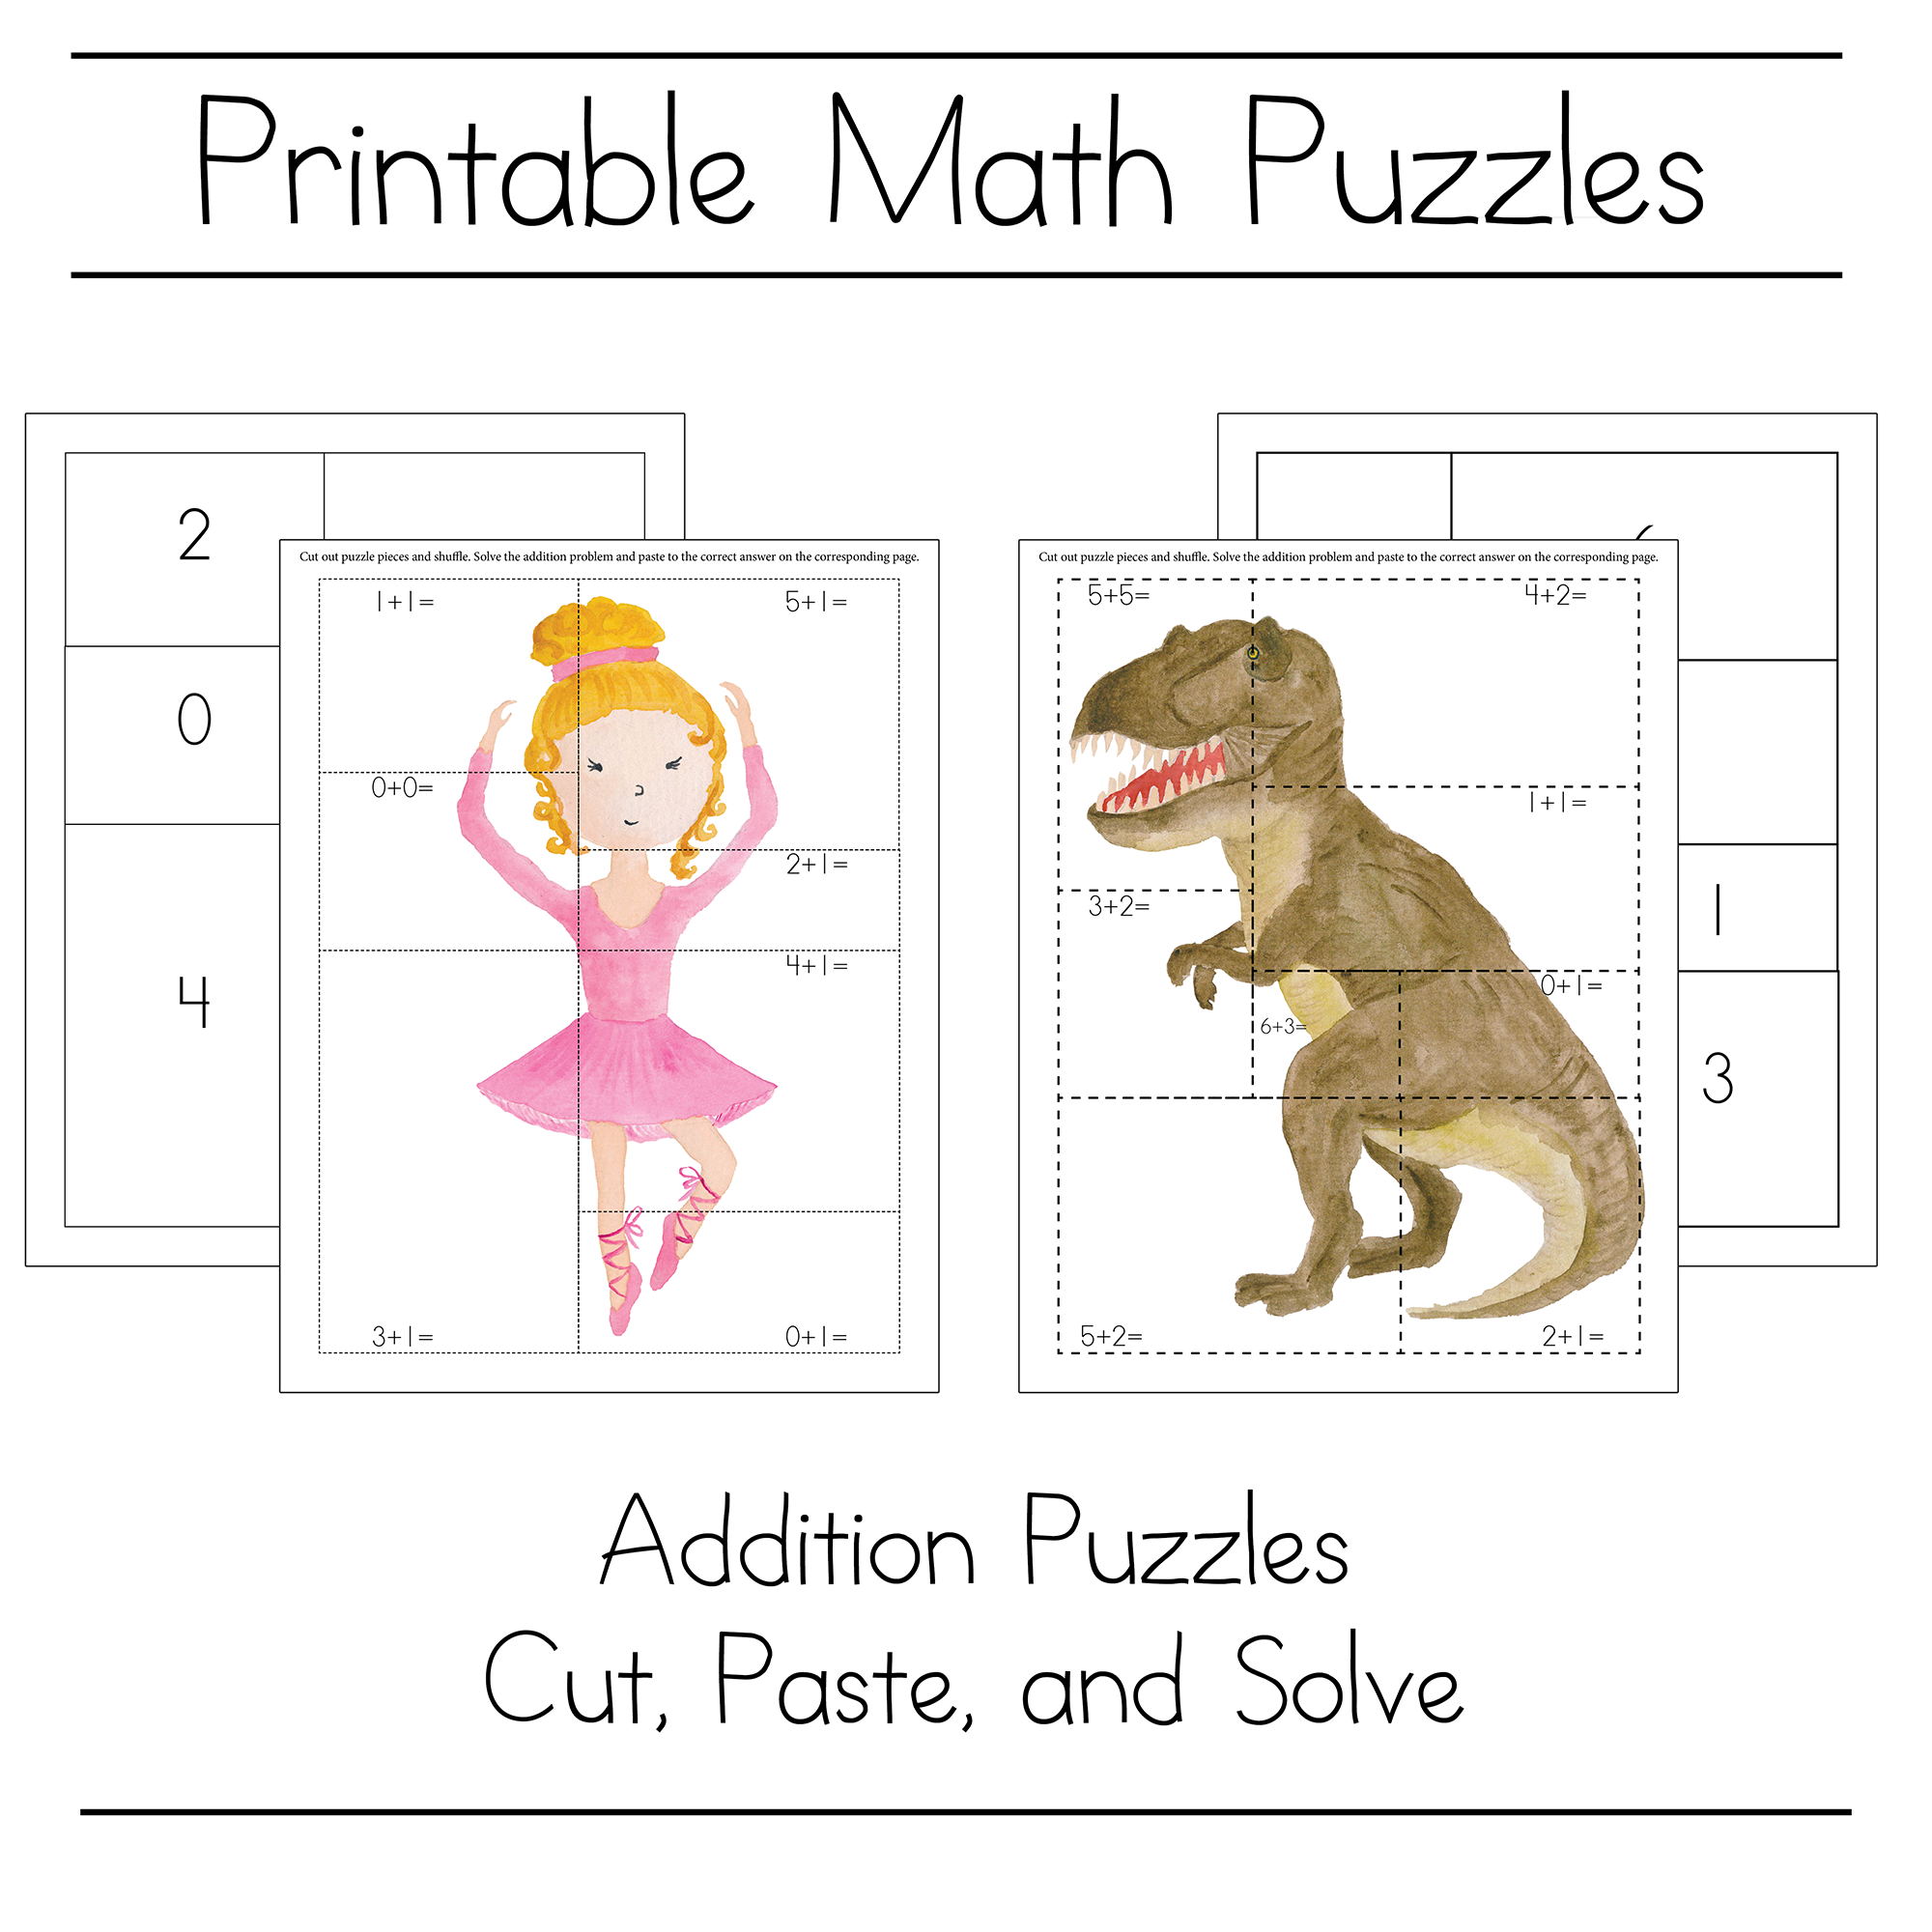 Fun Math Puzzle For Kids To Practice Math Skills - Free Download